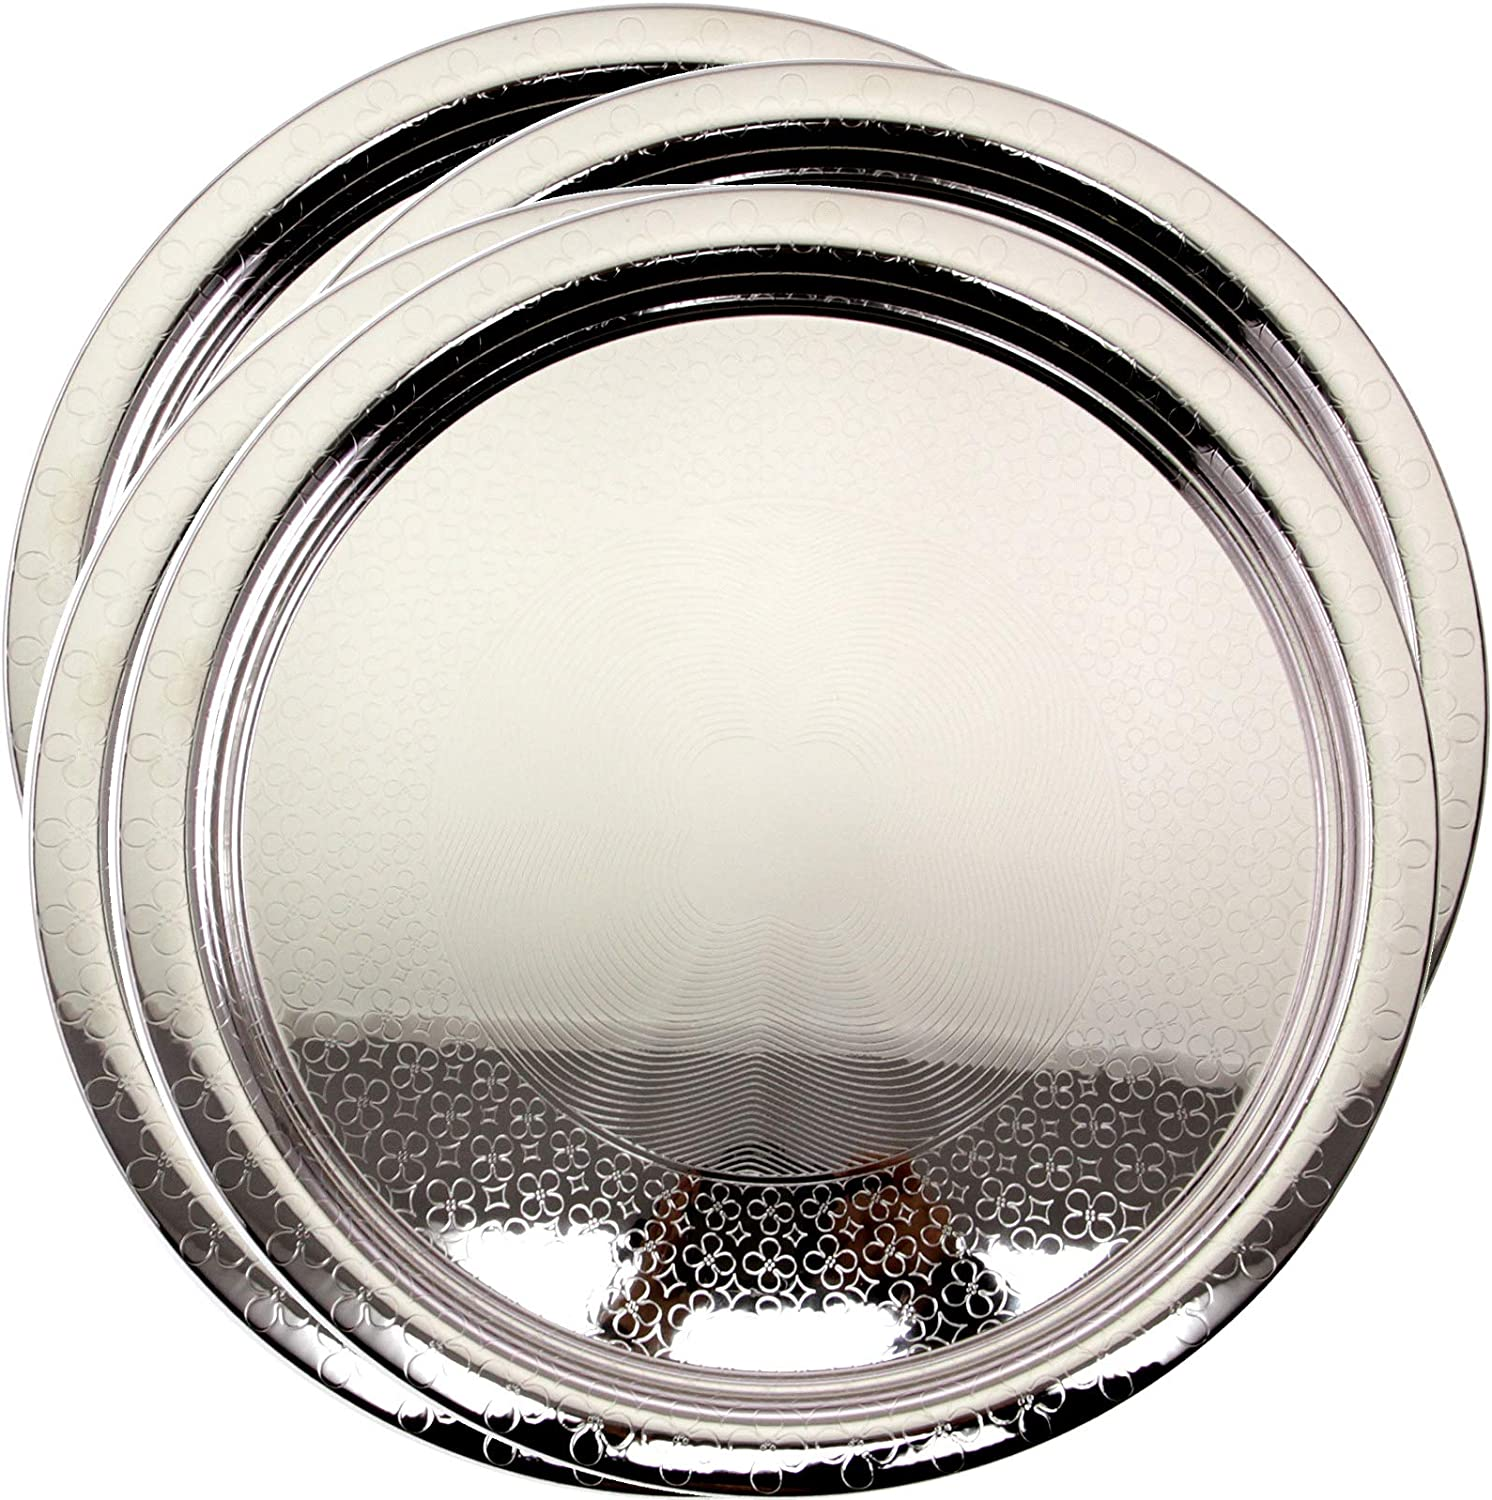 Maro Megastore (Pack of 4 16.3 Inch Round Chrome Plated Serving Tray Stylish Design Floral Victoria Design Engraved Decorative Party Birthday Wedding Dessert Buffet Wine Decor Platter Plate TLA-490